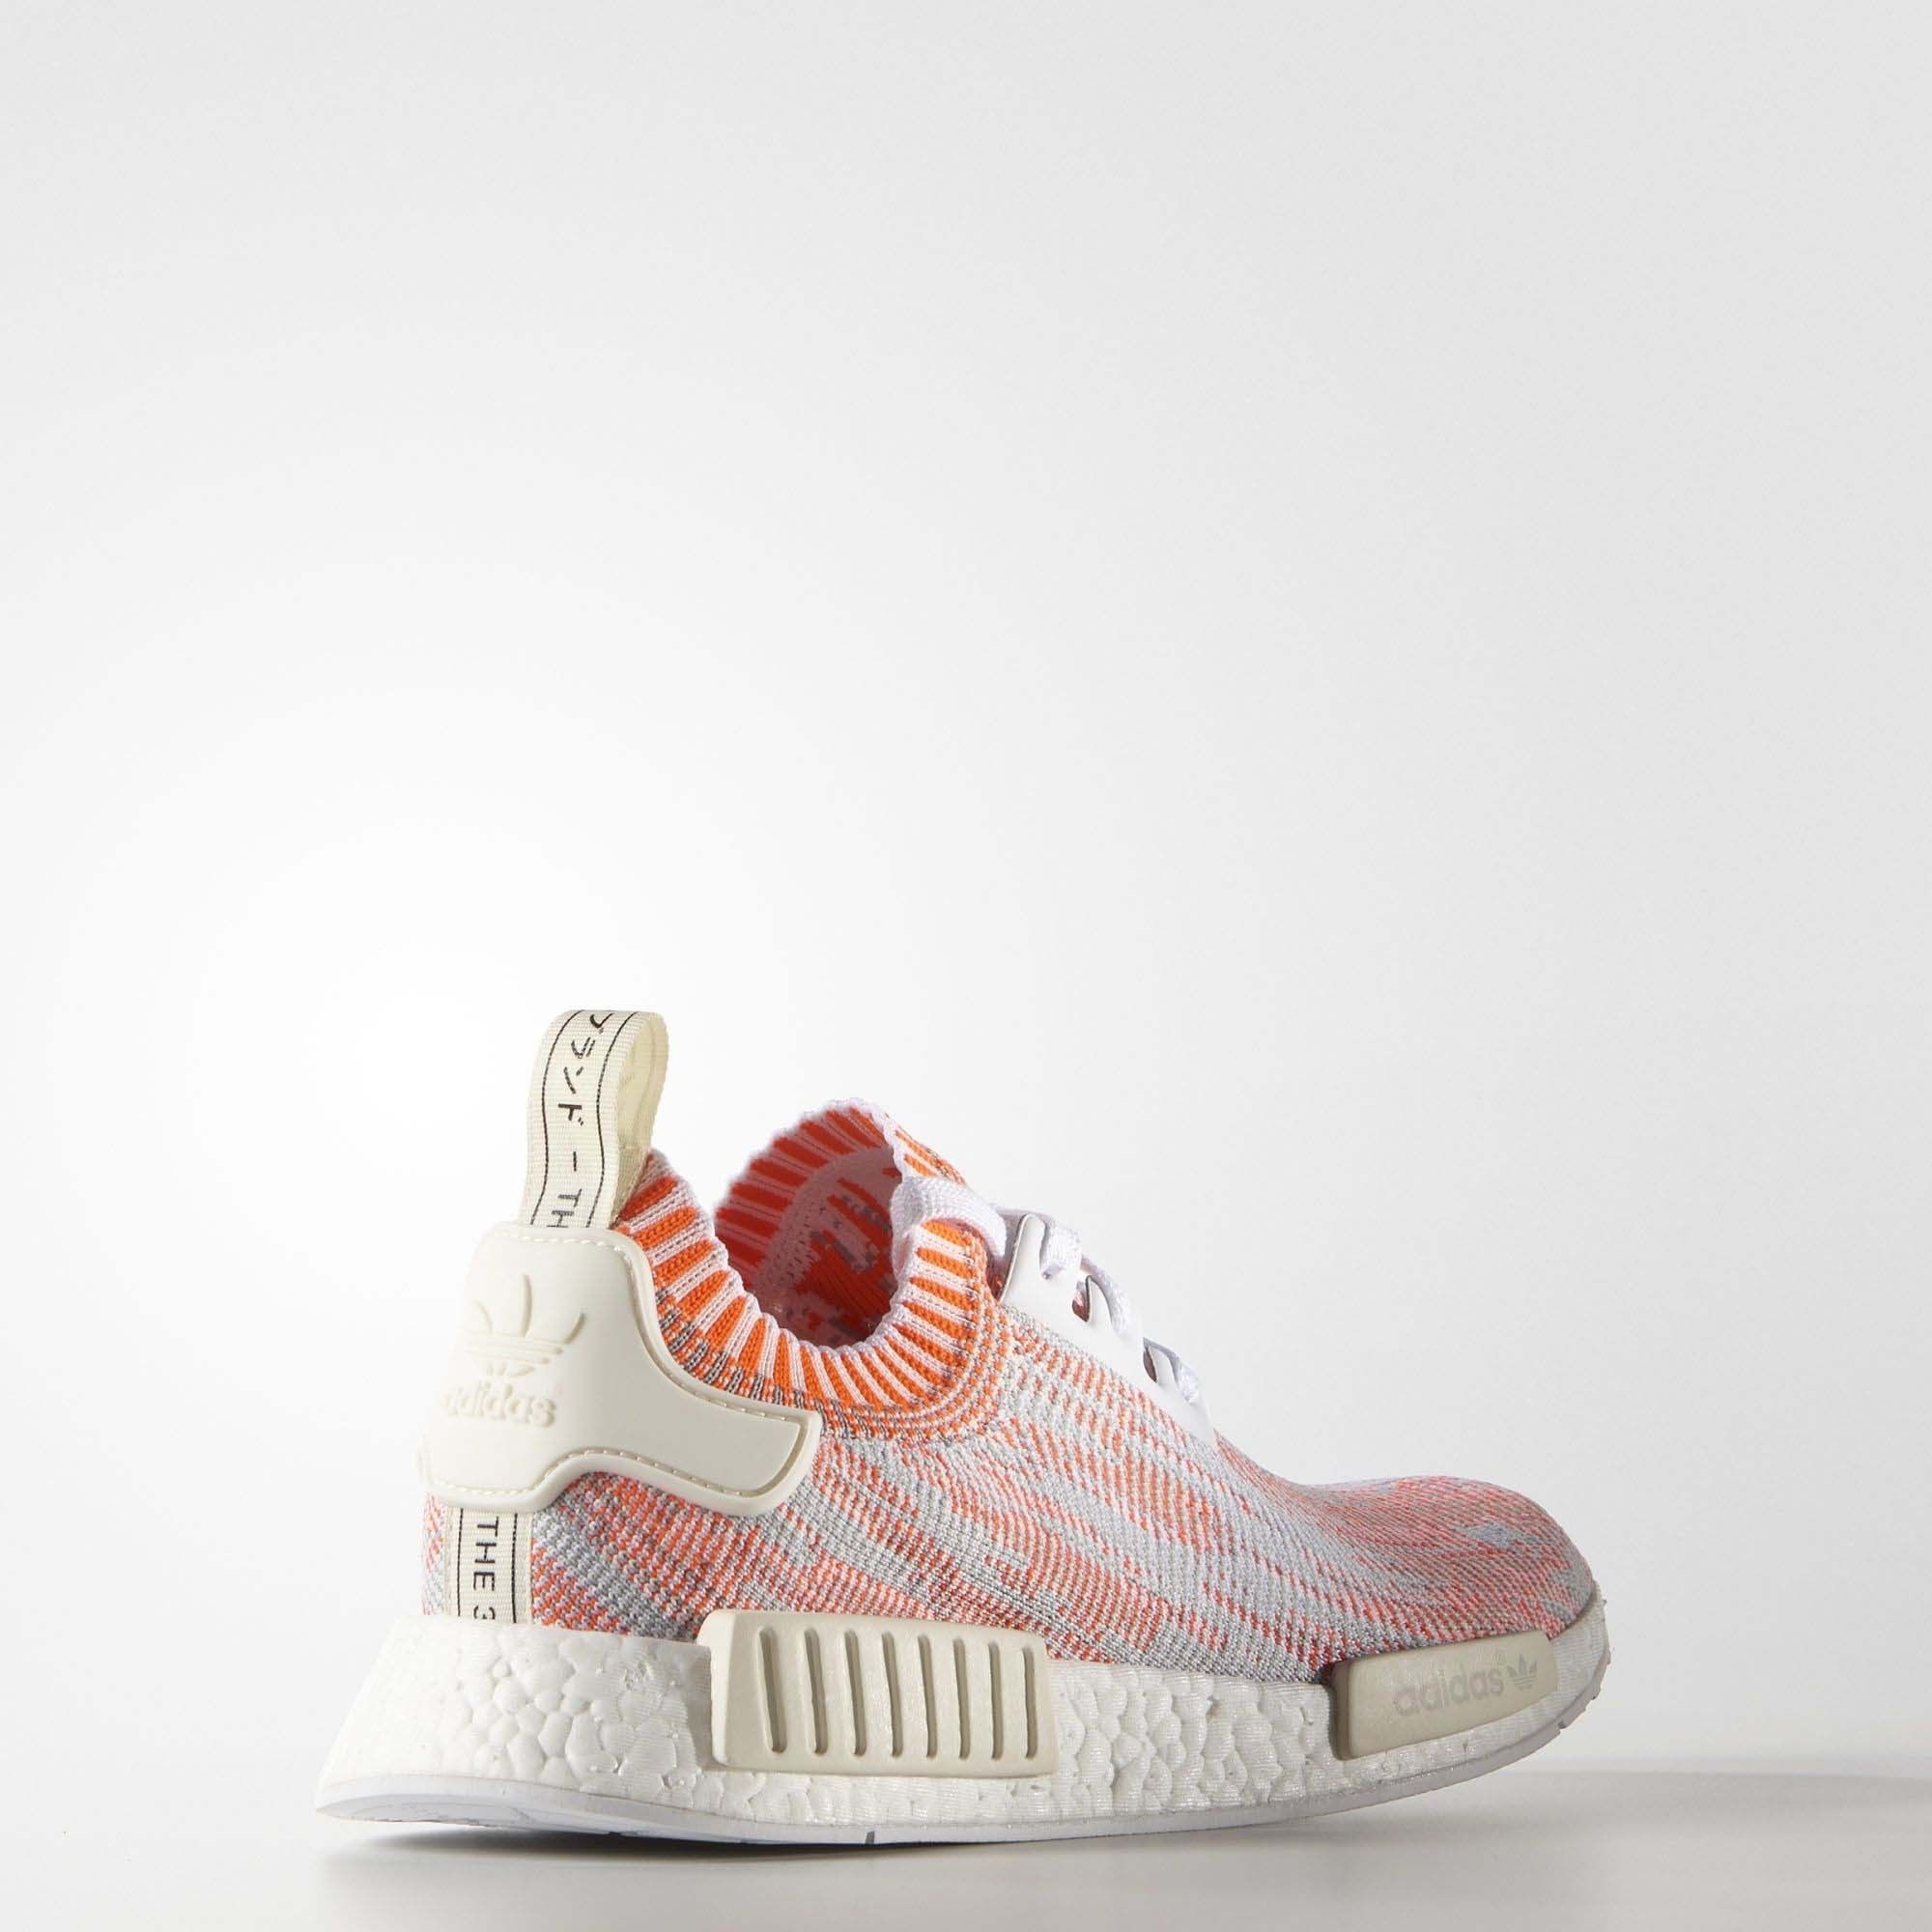 d5a3fcd1c2850 Adidas NMD R1 Primeknit Red Camo - Womens WhiteSolar RedOff White3 dokuz limited  offer